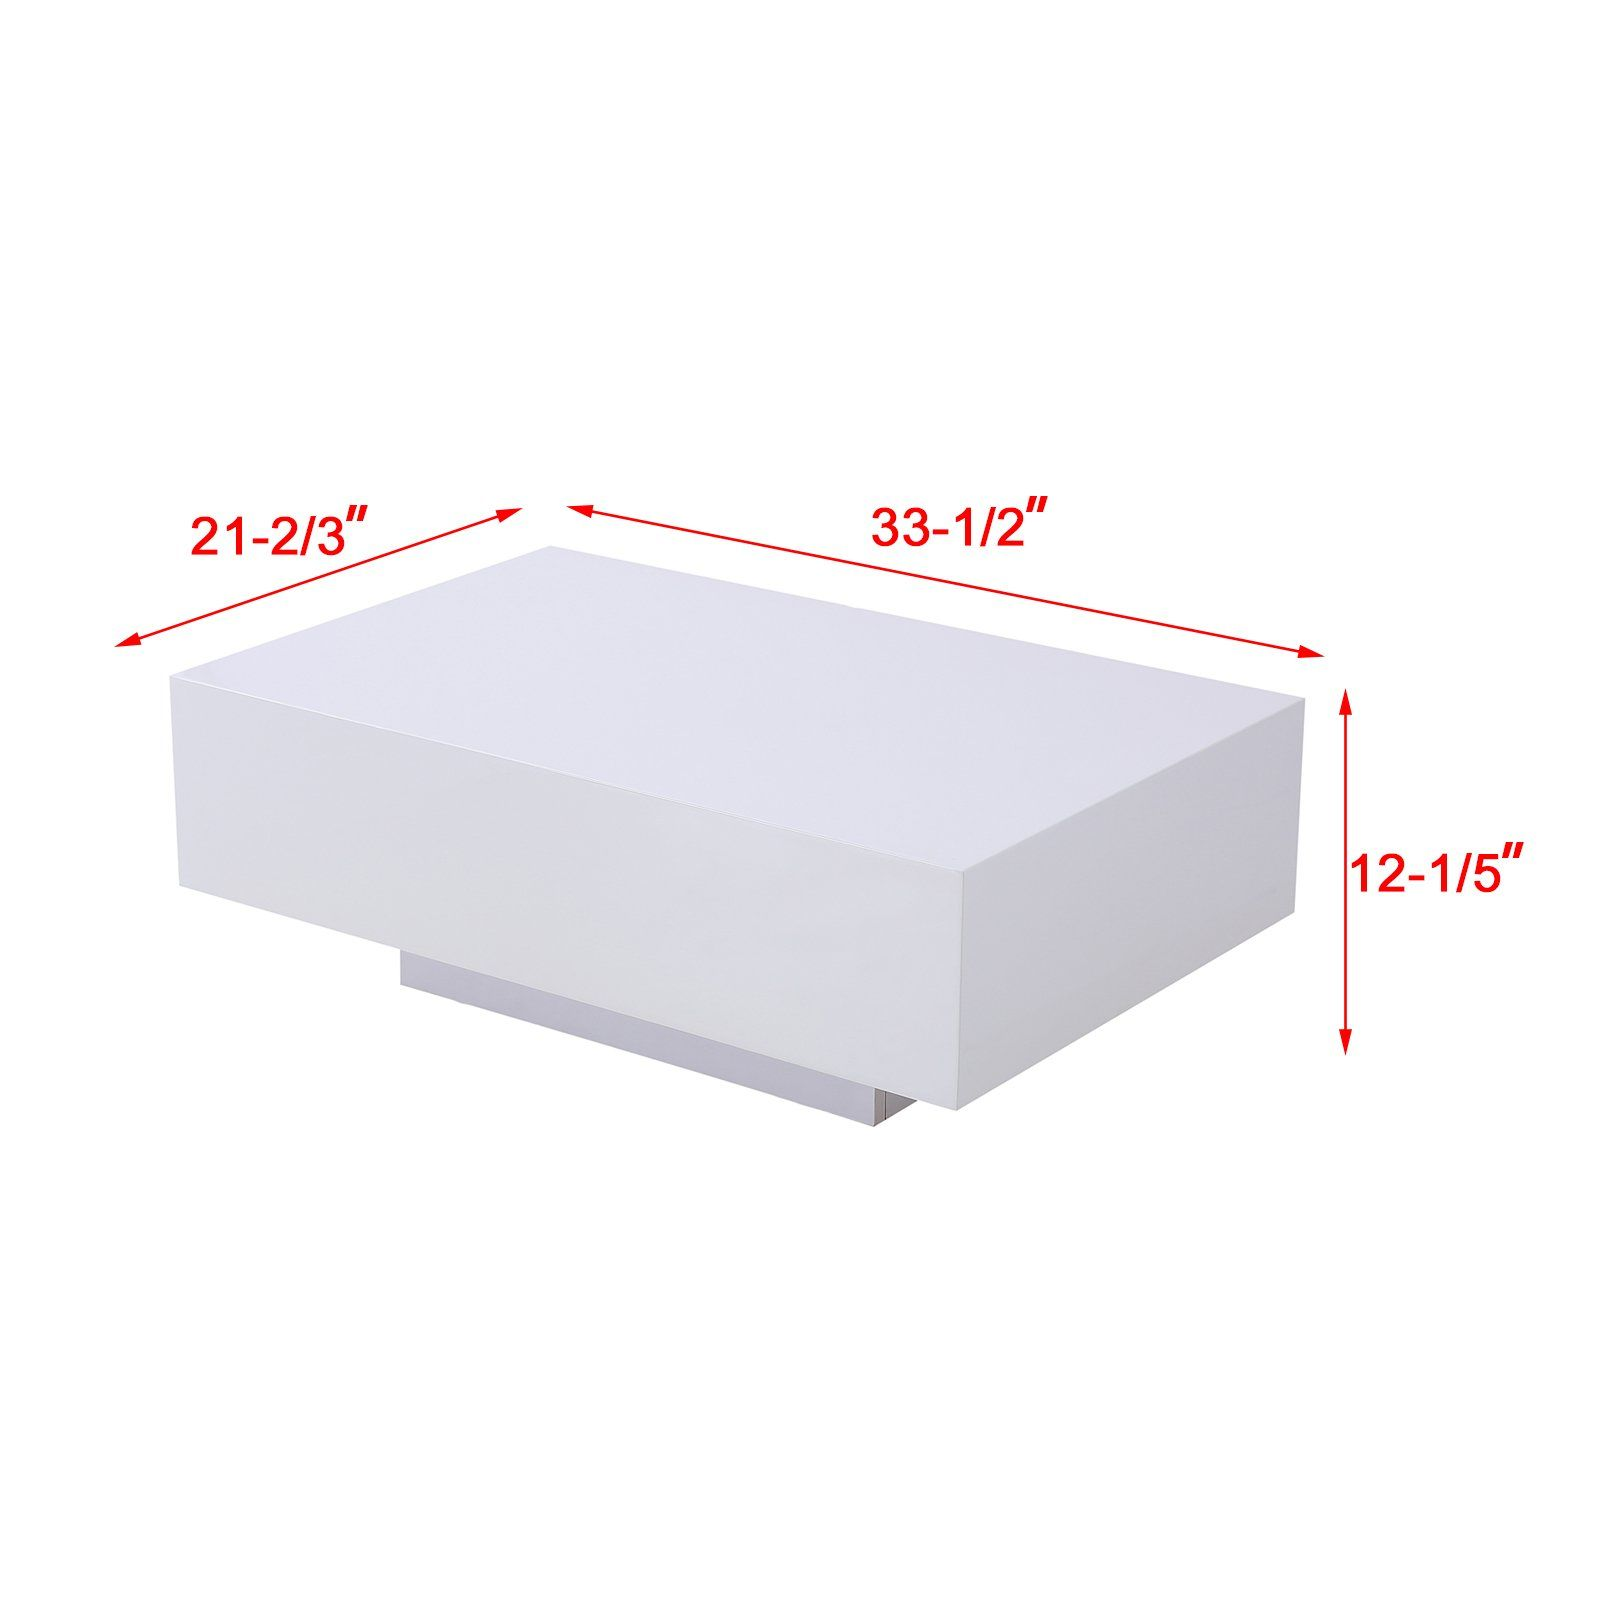 Mecor High Gloss White Rectangle Coffee Table Modern Side End Sofa Table With 1 Layer Living Room Coffee Table Rectangle Living Room Table Modern Coffee Tables [ 1600 x 1600 Pixel ]